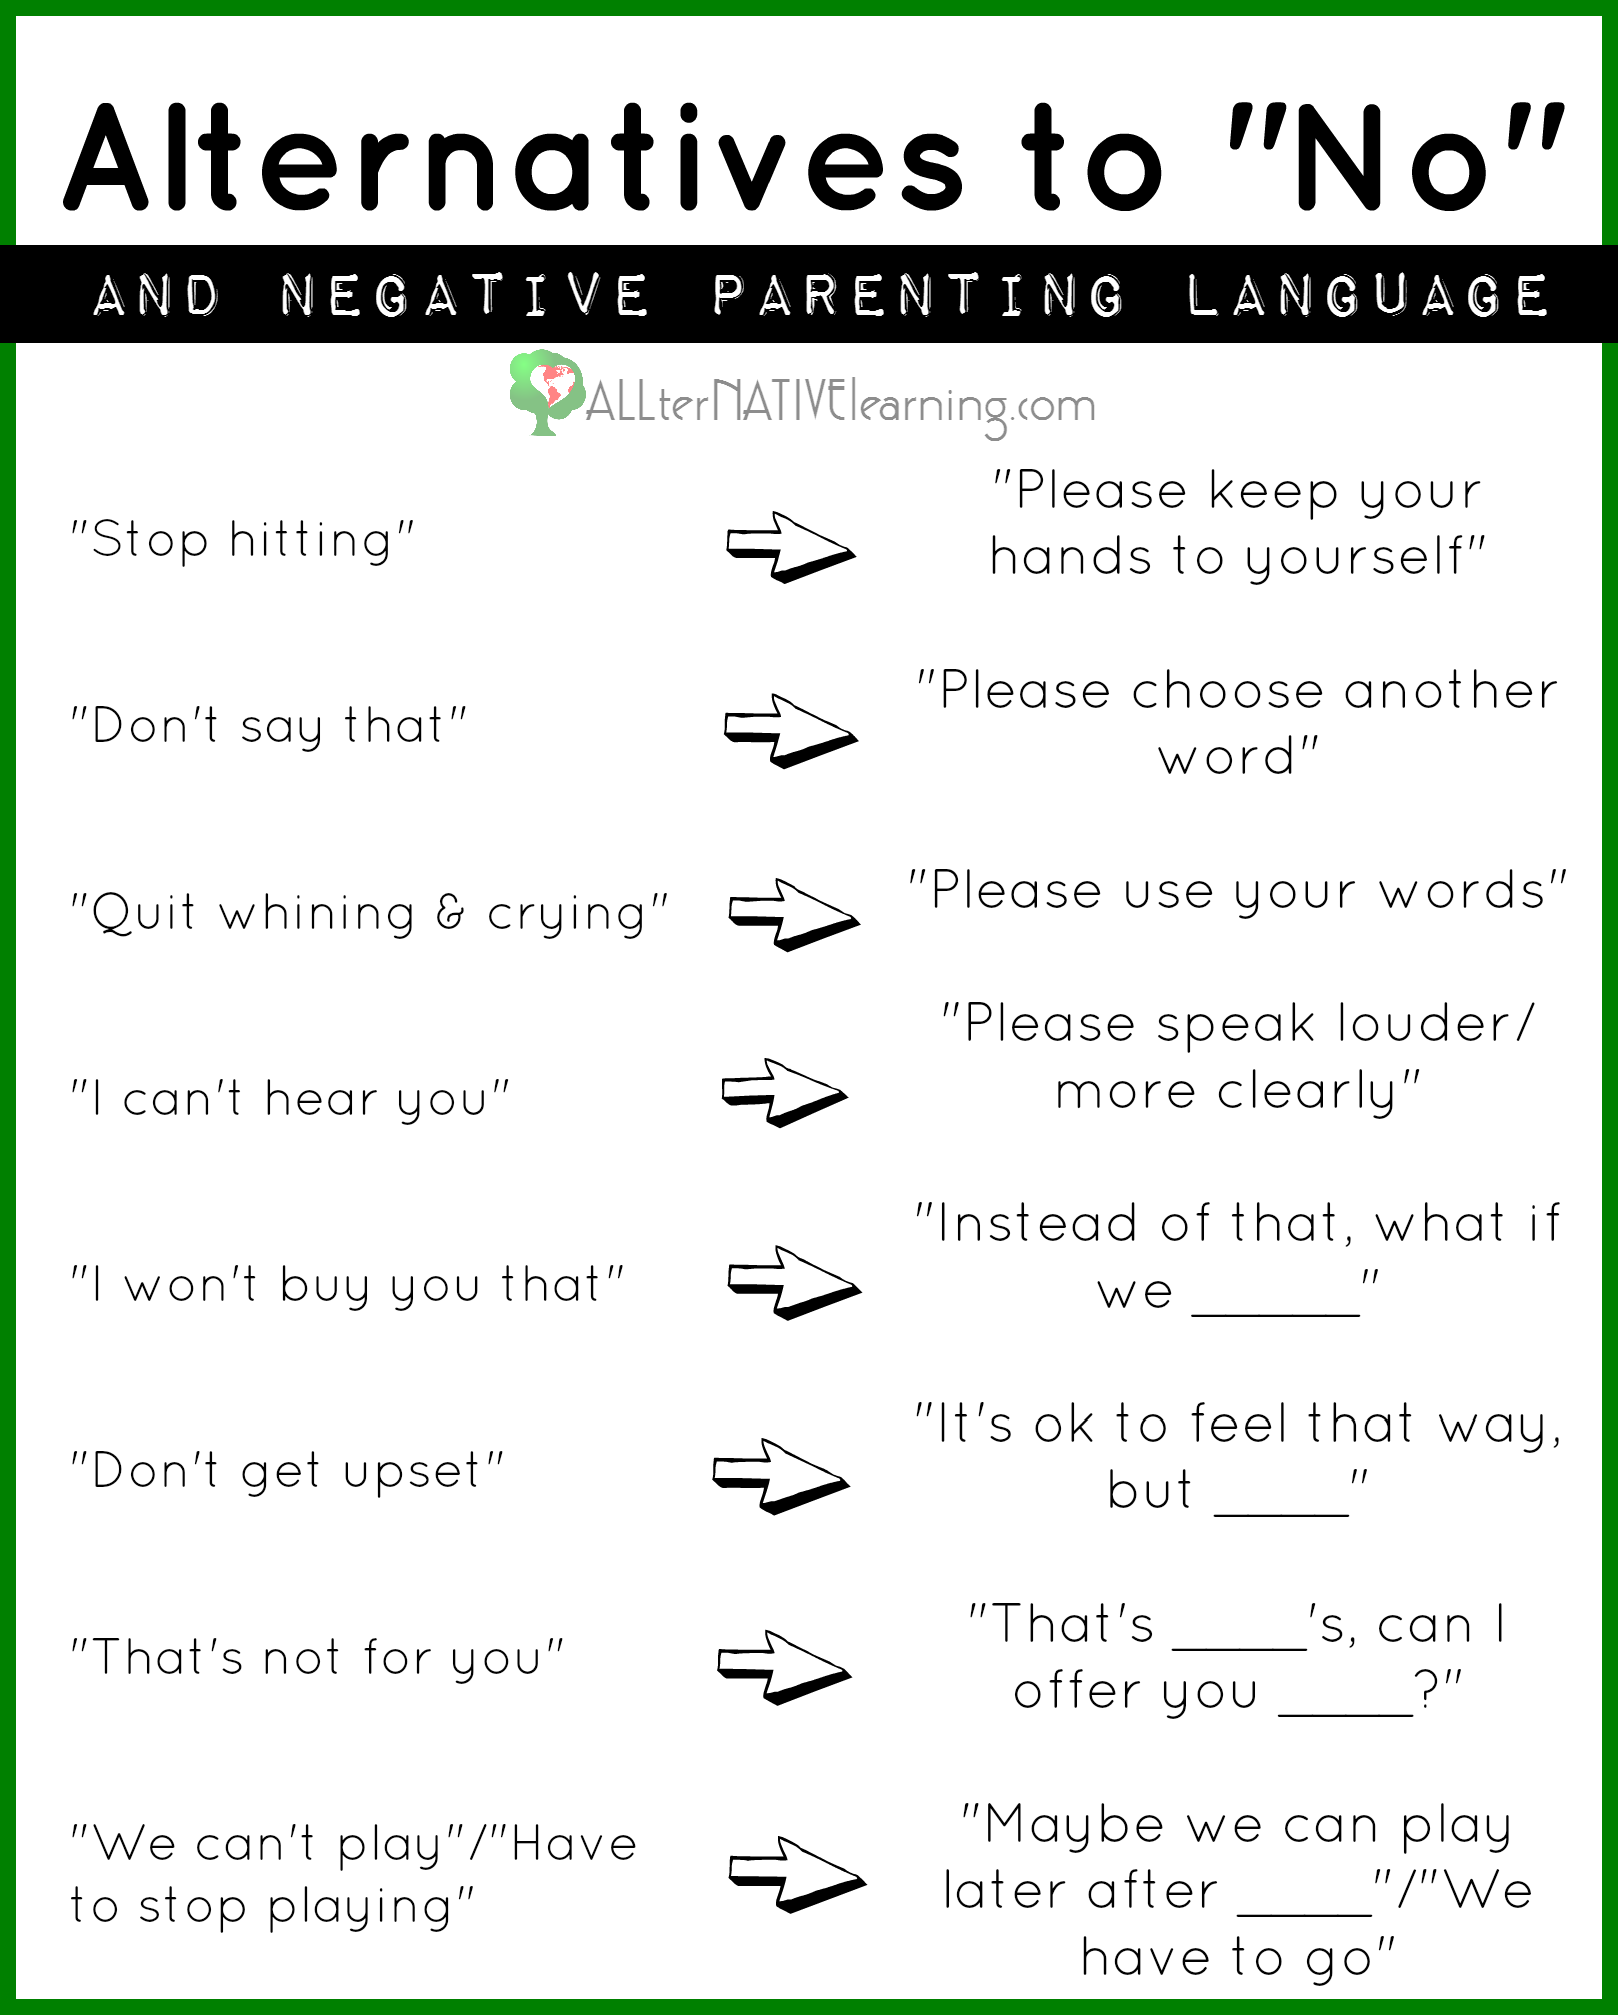 How Negative Language Impacts Kids And Why No Should Be